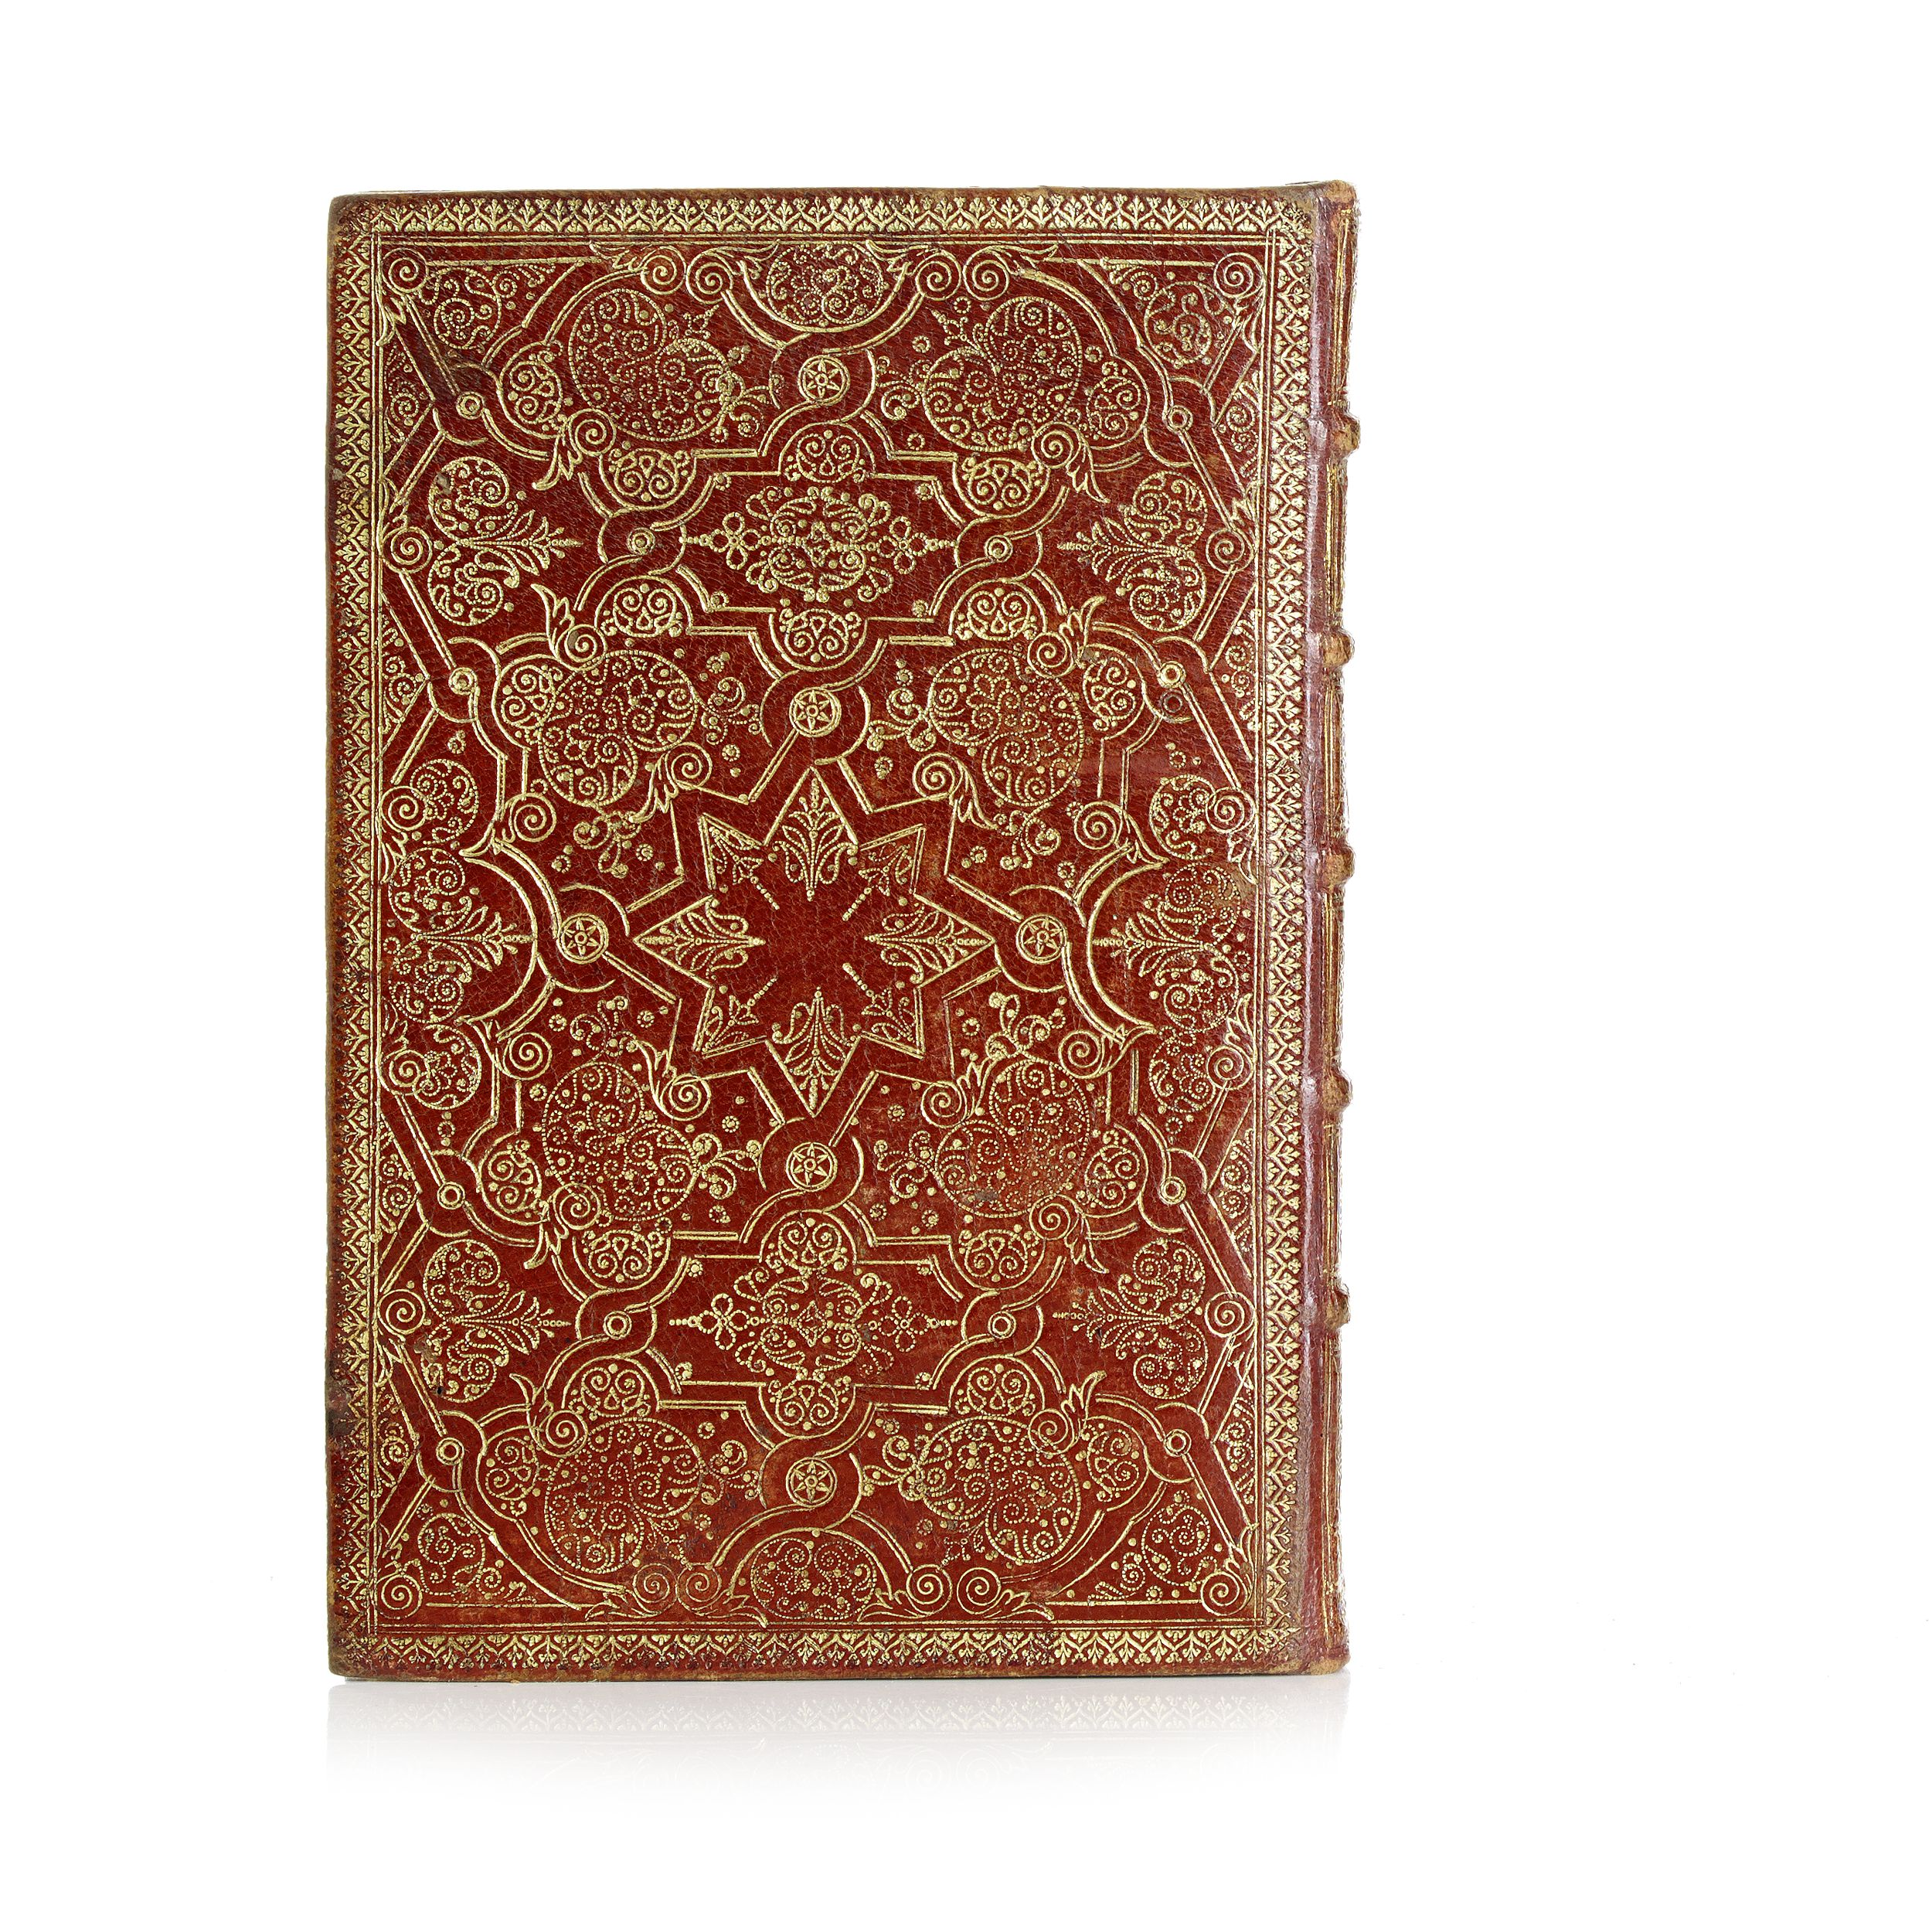 Beautiful binding in red morocco